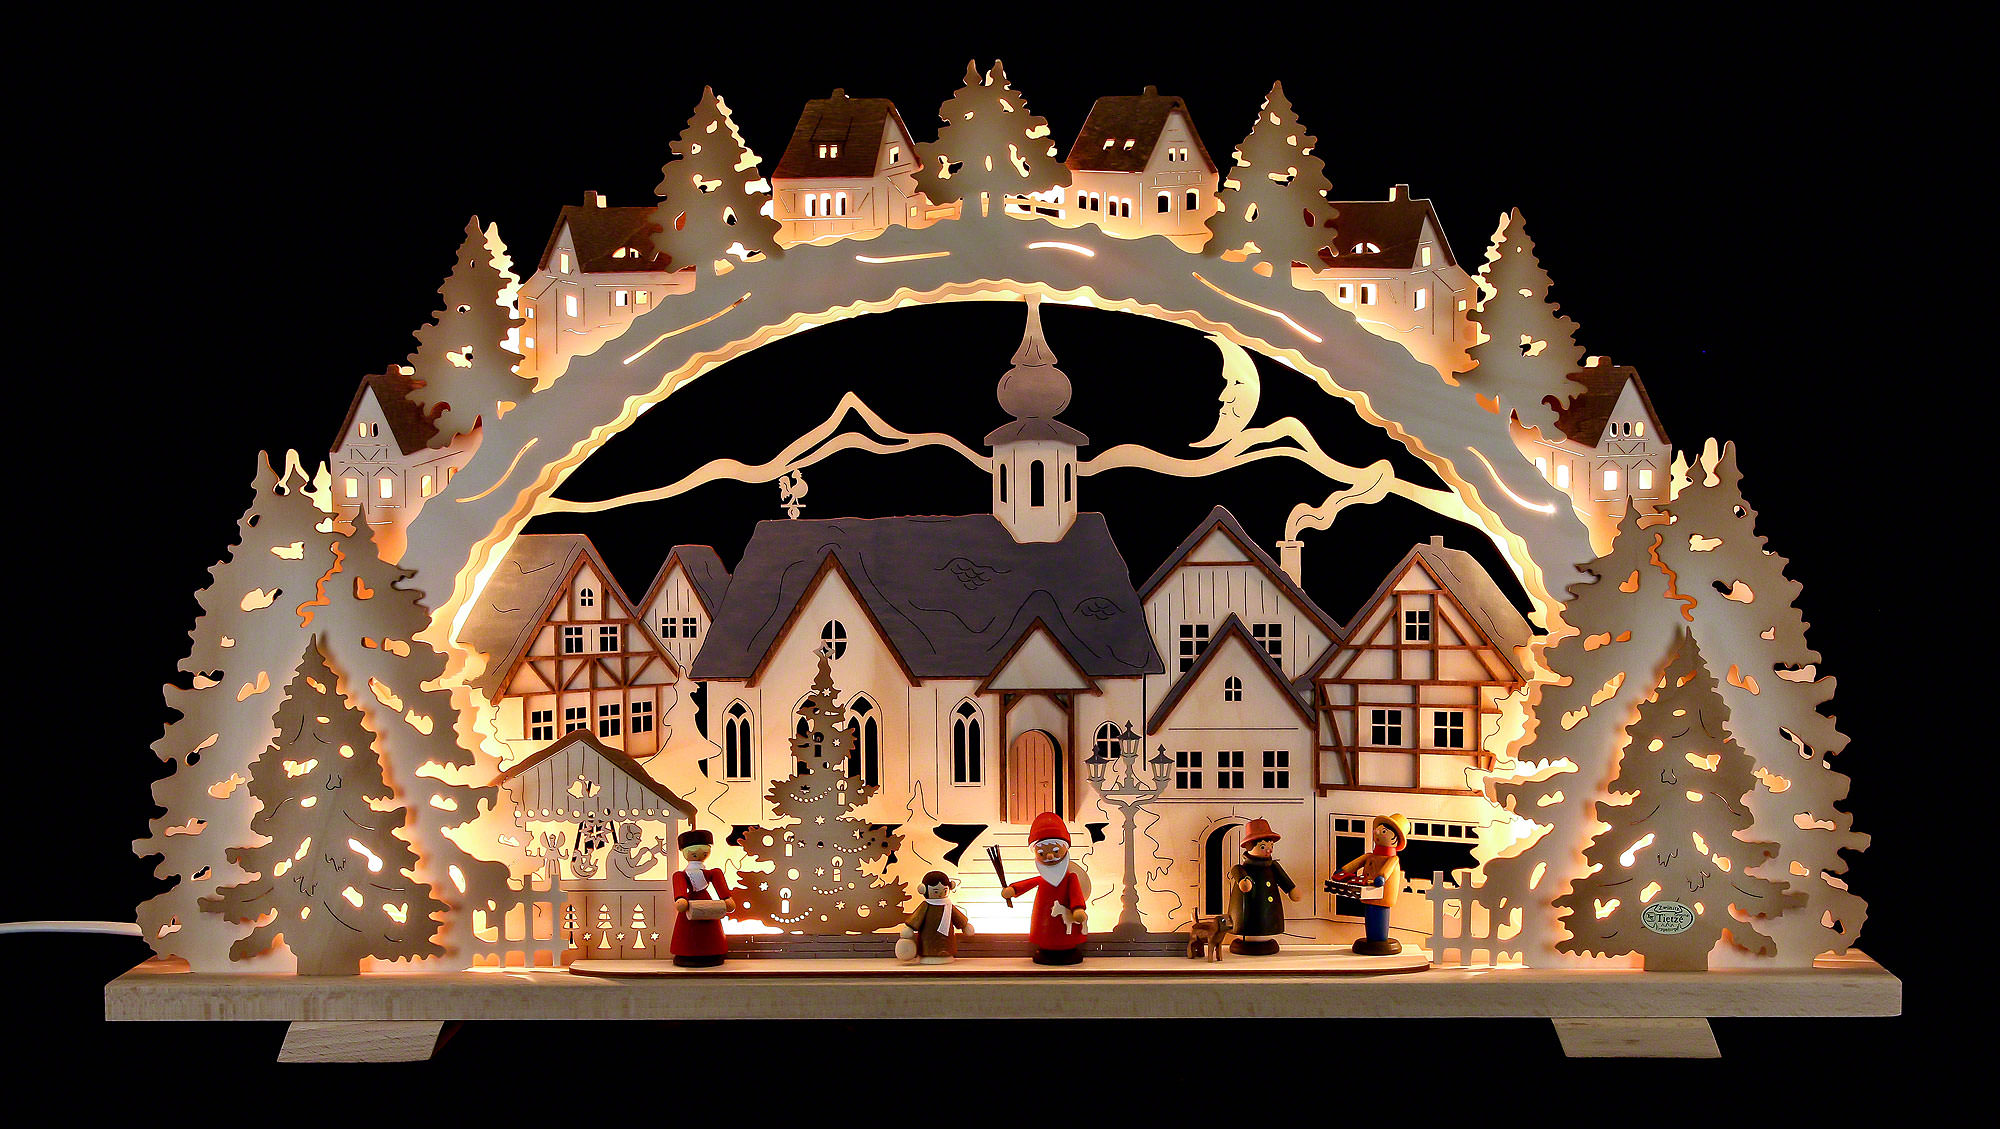 Candle arch christmas time exclusive 72 41 7 cm 28 3 16 for Arch candle christmas decoration